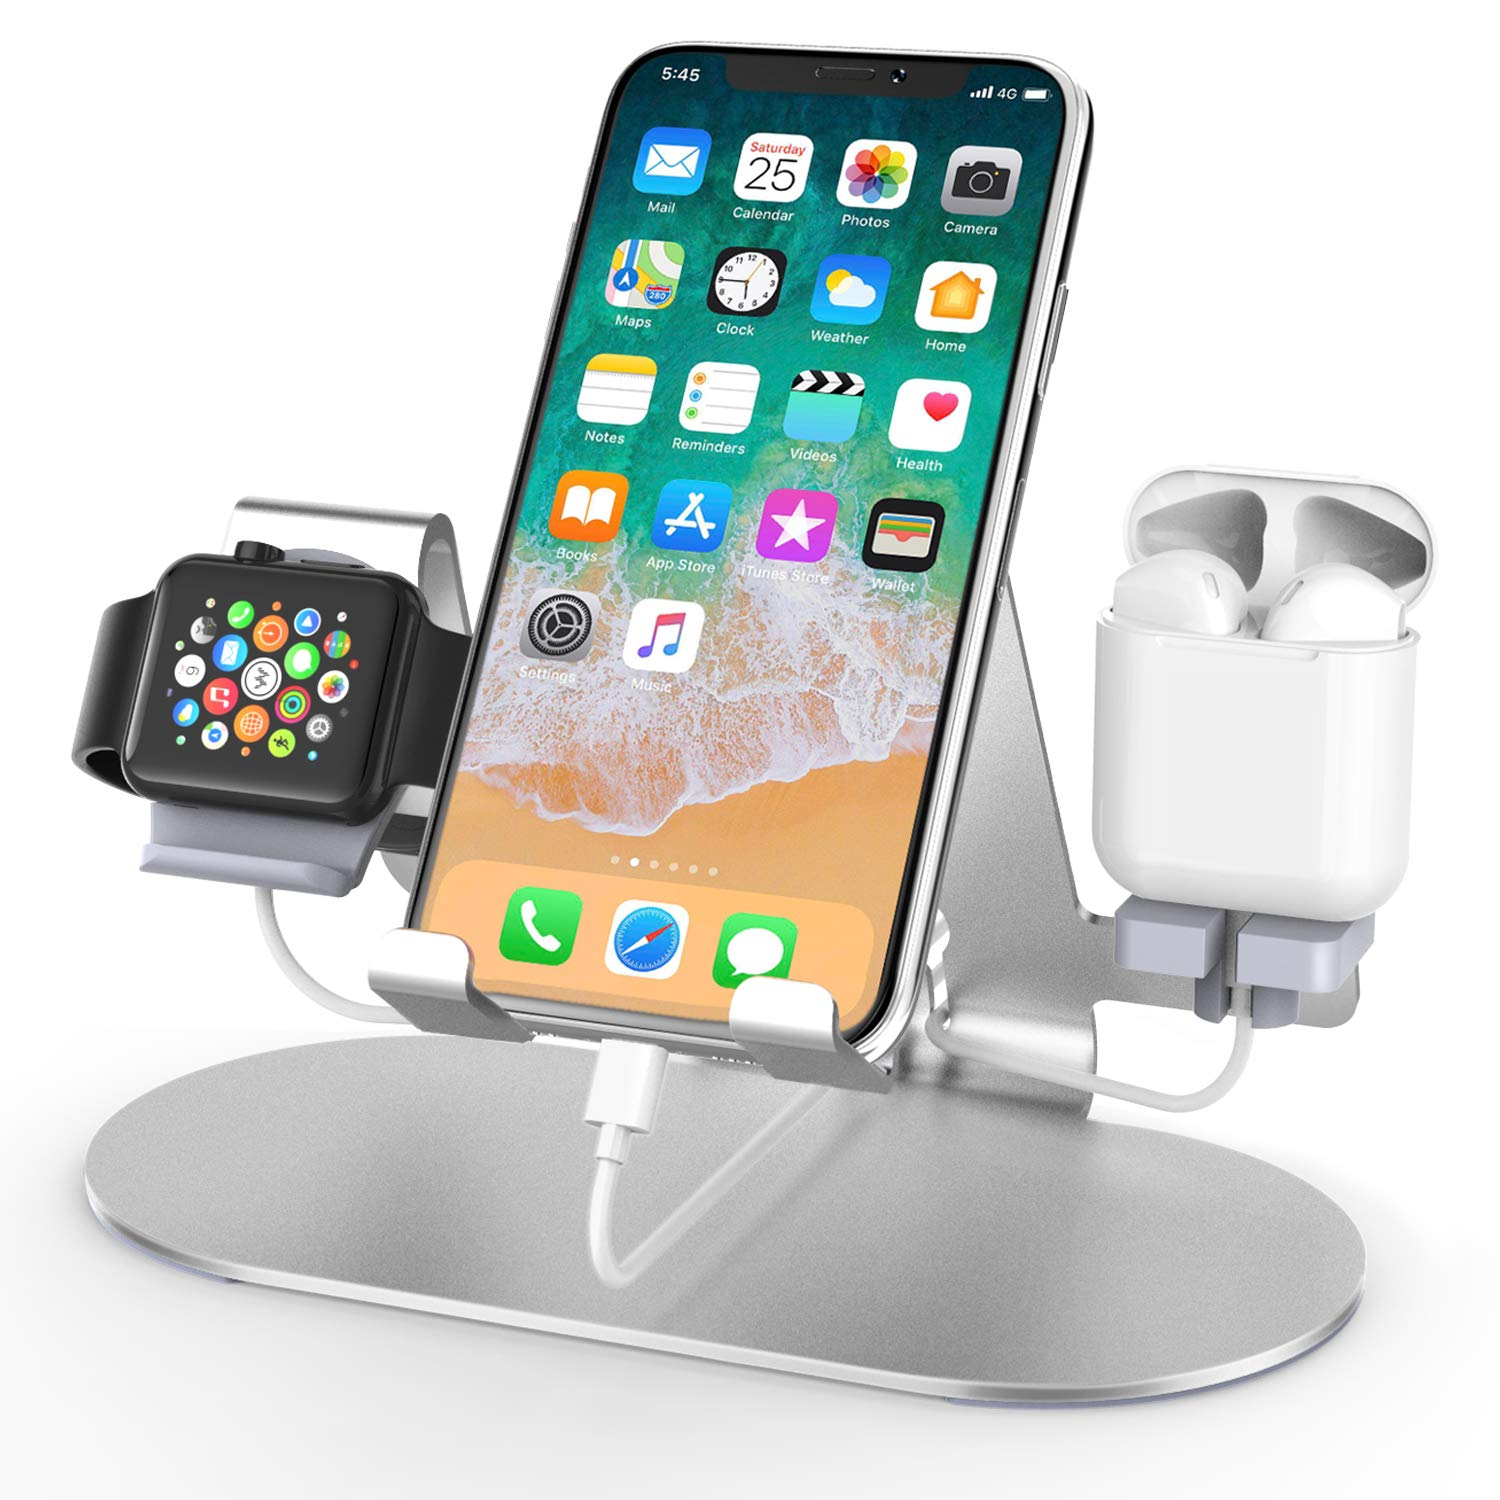 3 in 1 Aluminum Charging Station for Apple Watch Charger Stand Dock for iWatch Series 4/3/2/1,iPad,AirPods and iPhone Xs/X Max/XR/X/8/8Plus/7/7 Plus /6S /6S Plus/ by HoRiMe